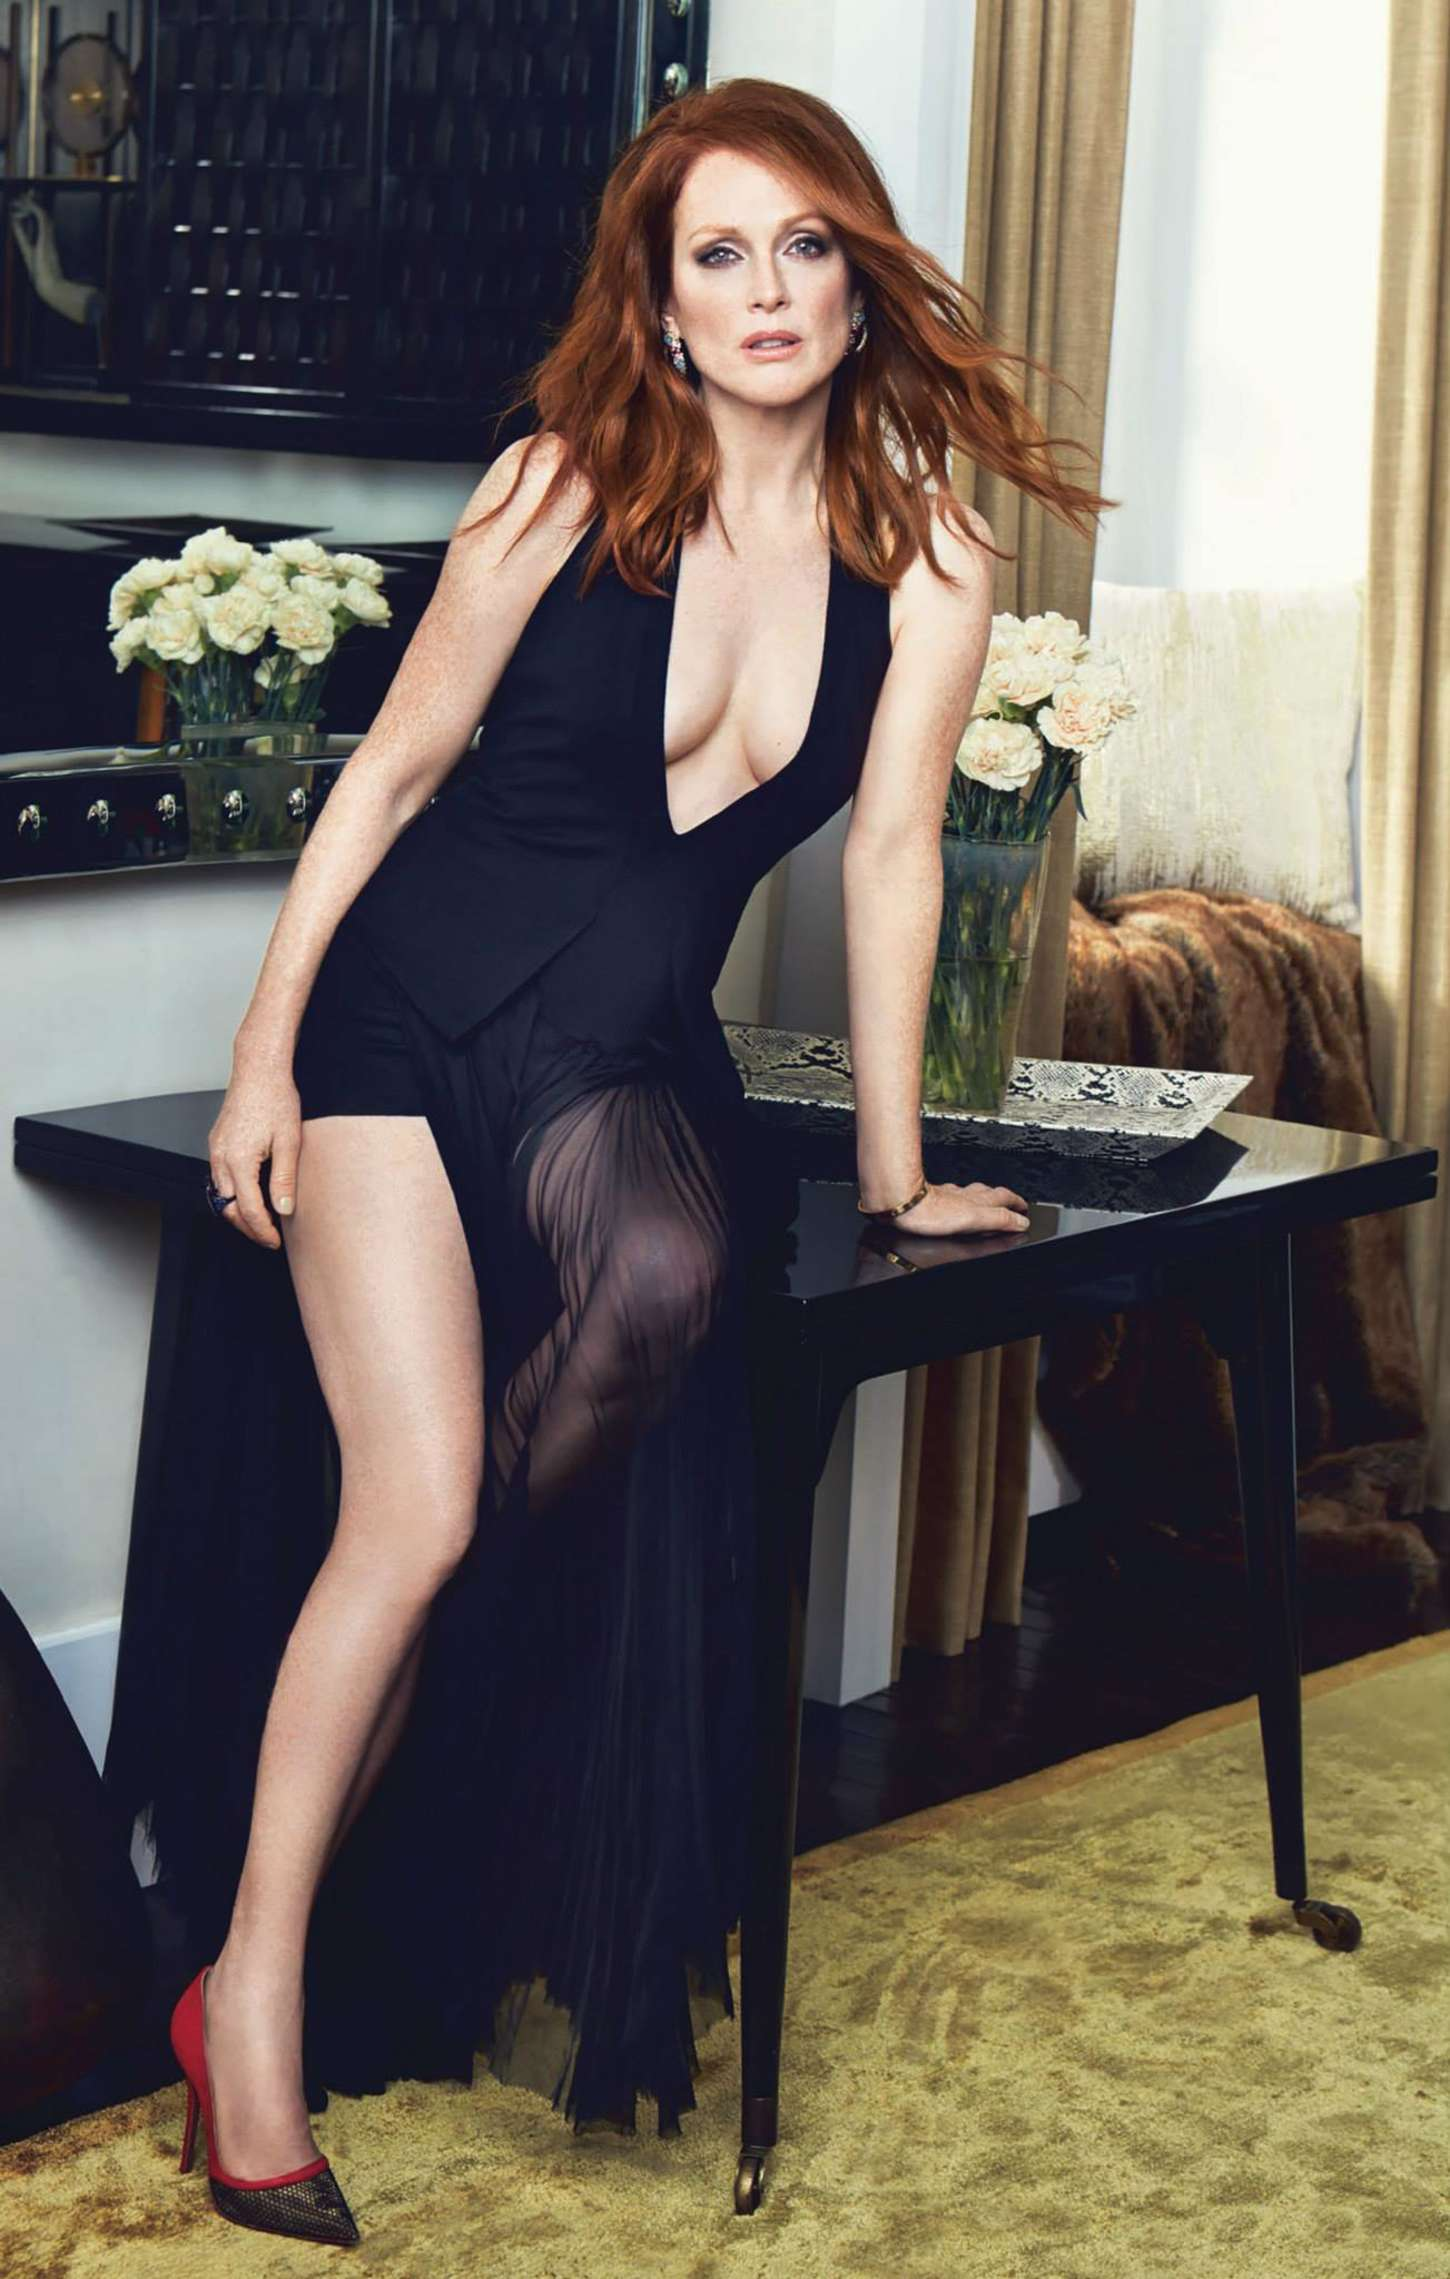 Julianne Moore hot and sexy pic